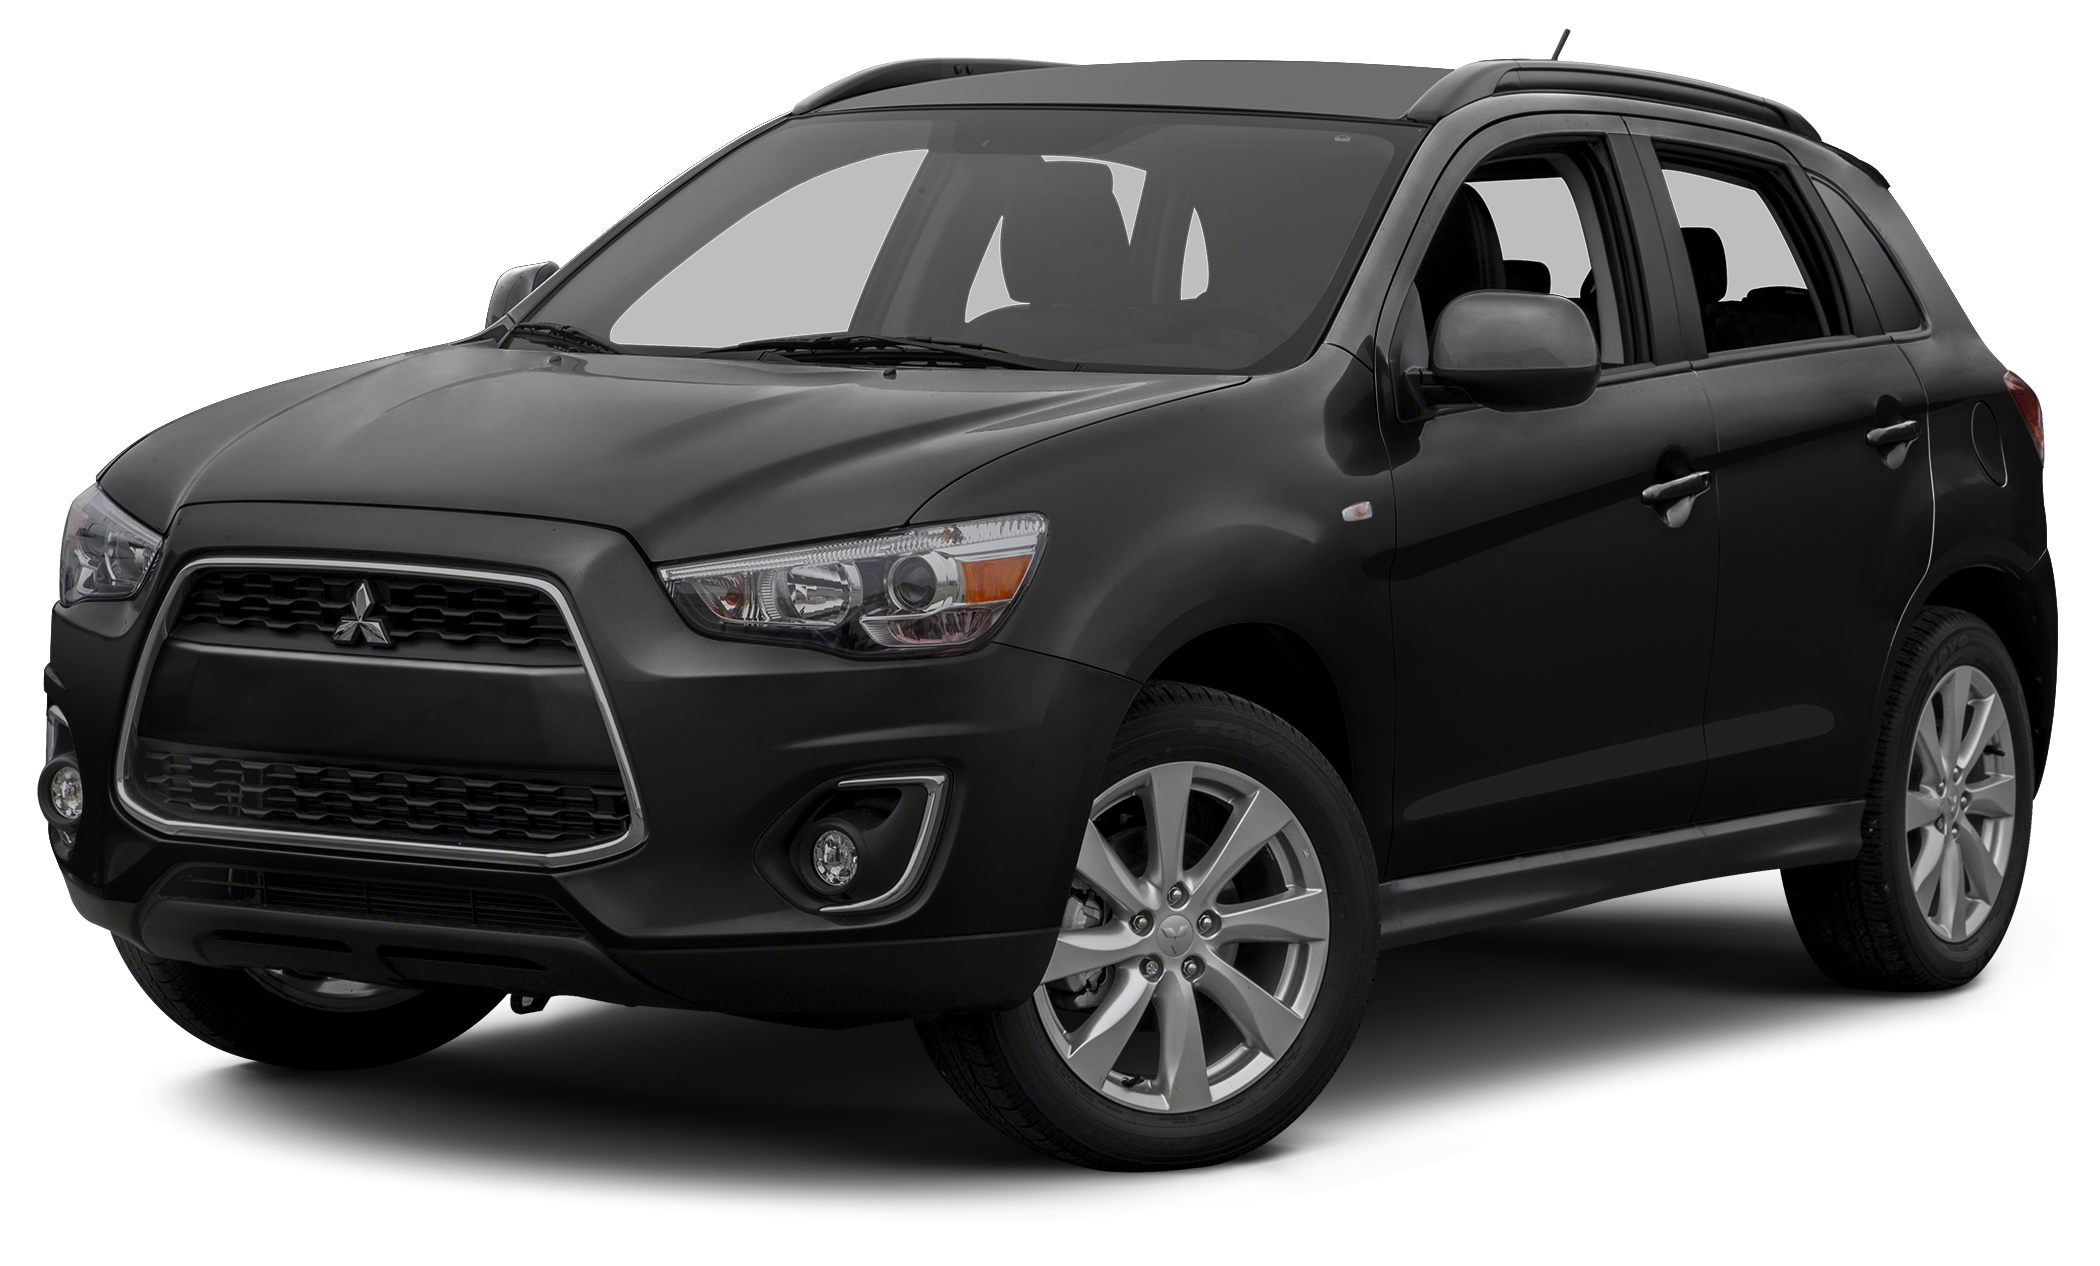 2013 Mitsubishi Outlander Sport SE Excellent Condition ONLY 39644 Miles SE trim Labrador Black